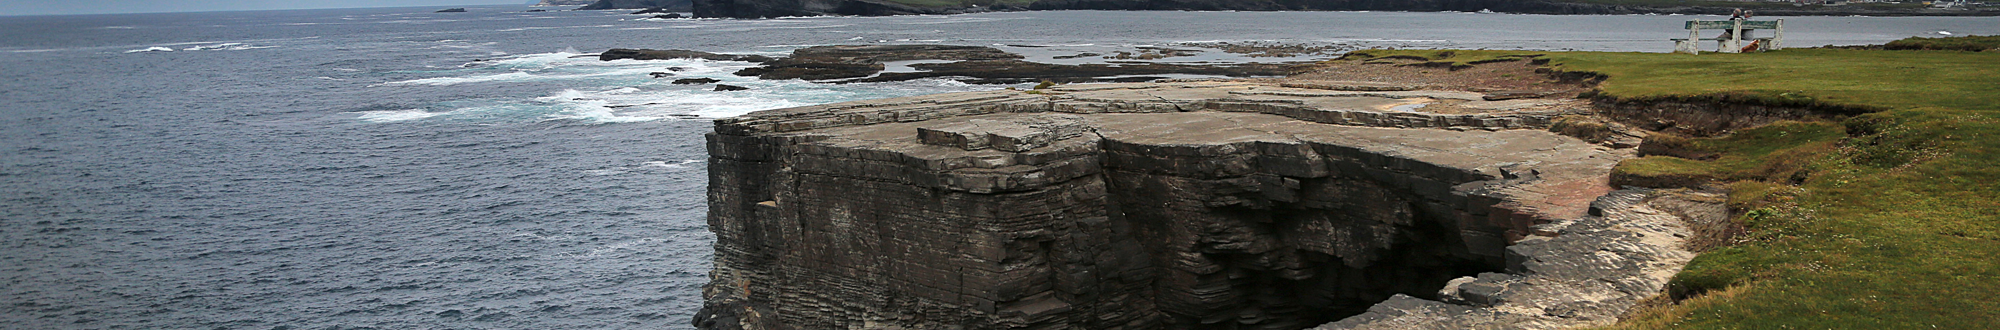 image of kilkee cliffs, clare, co.clare ireland